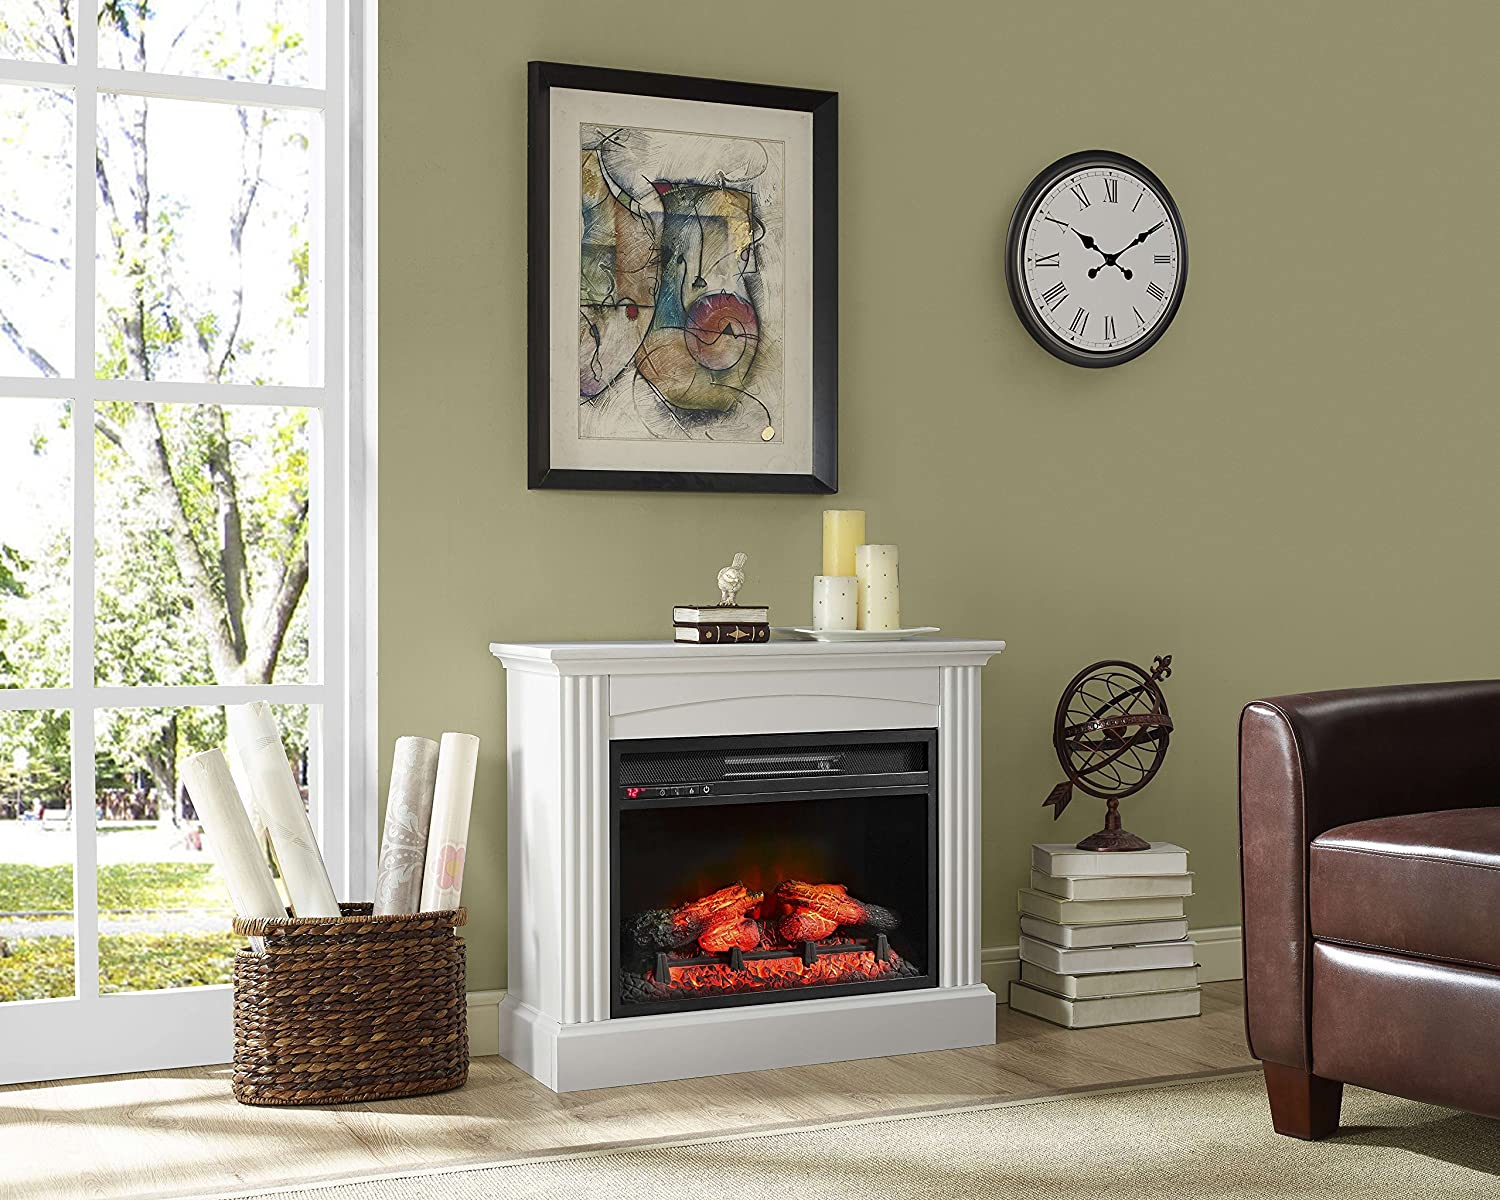 White Fireplace Electric Infrared Heater Large Room